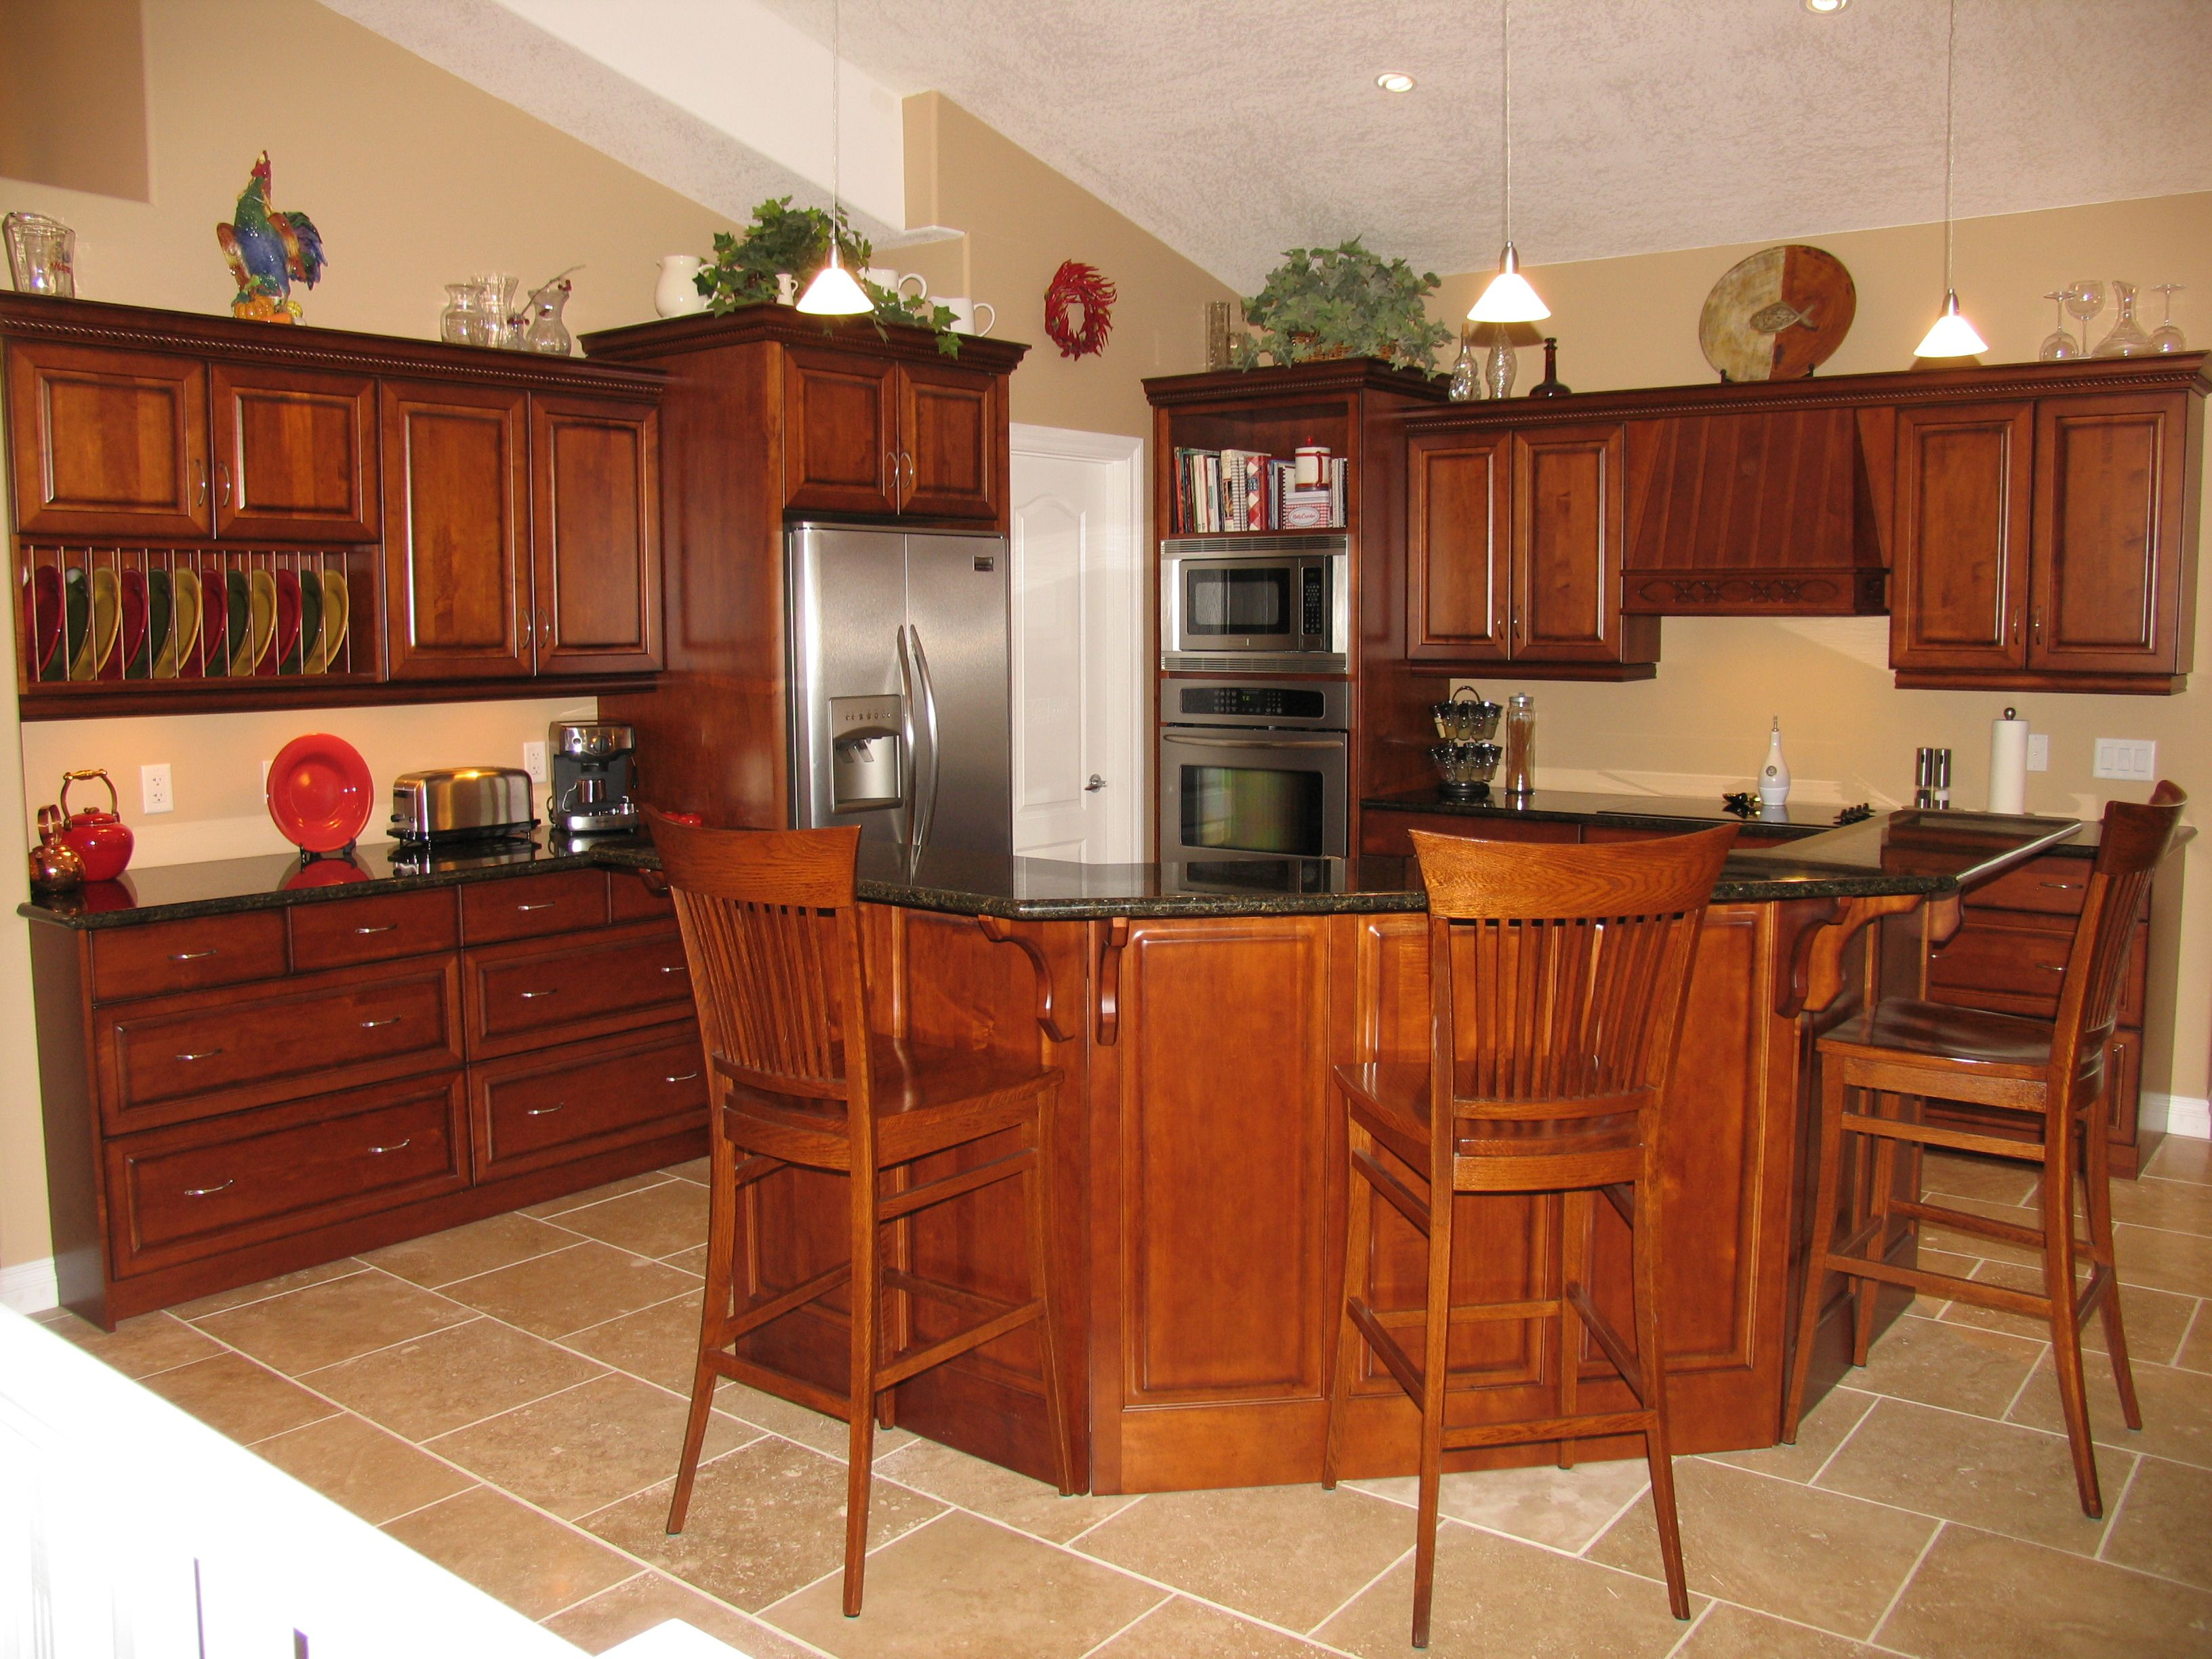 traditional hampton bay kitchen cabinets Cabinets Maple Cognac Countertops Granite Ubatuba